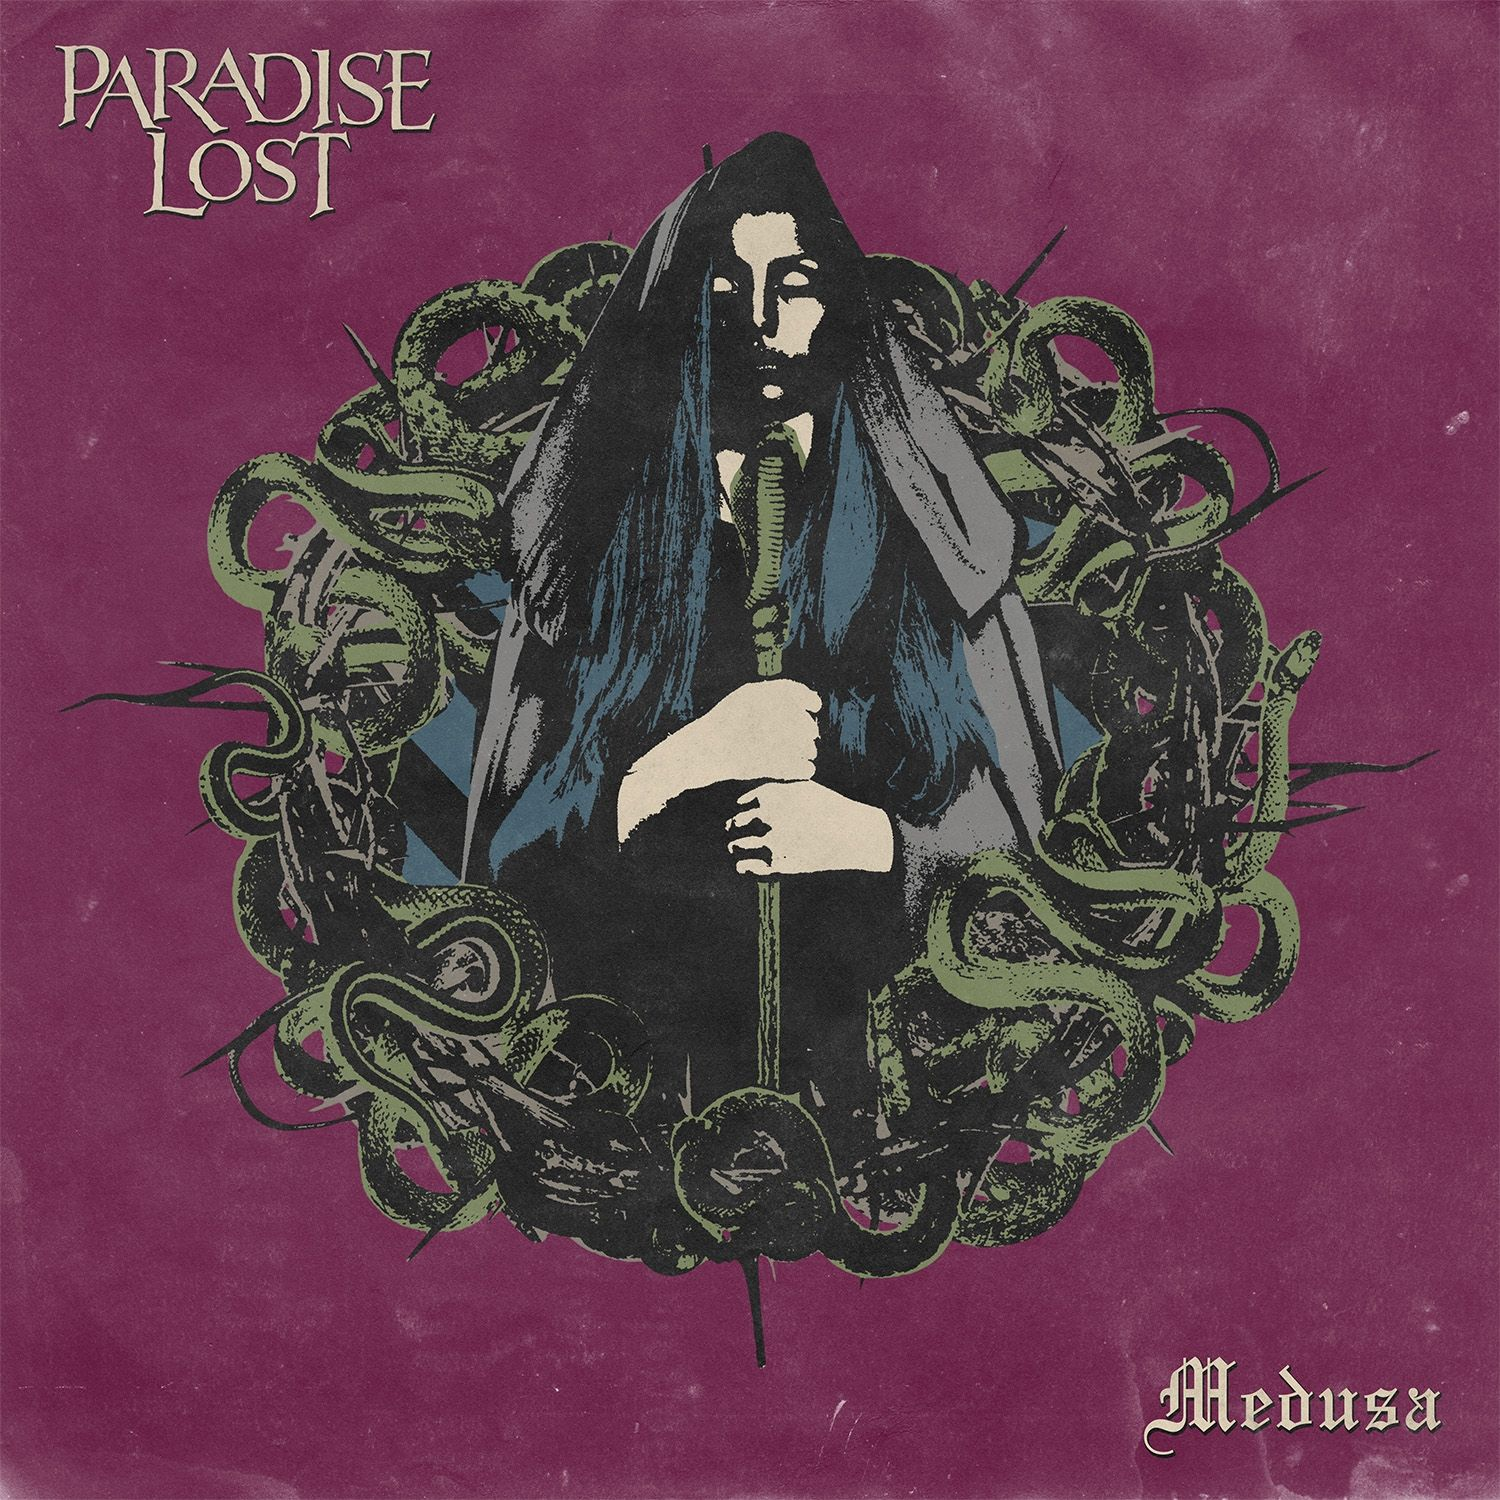 Paradise Lost - Medusa - Artwork